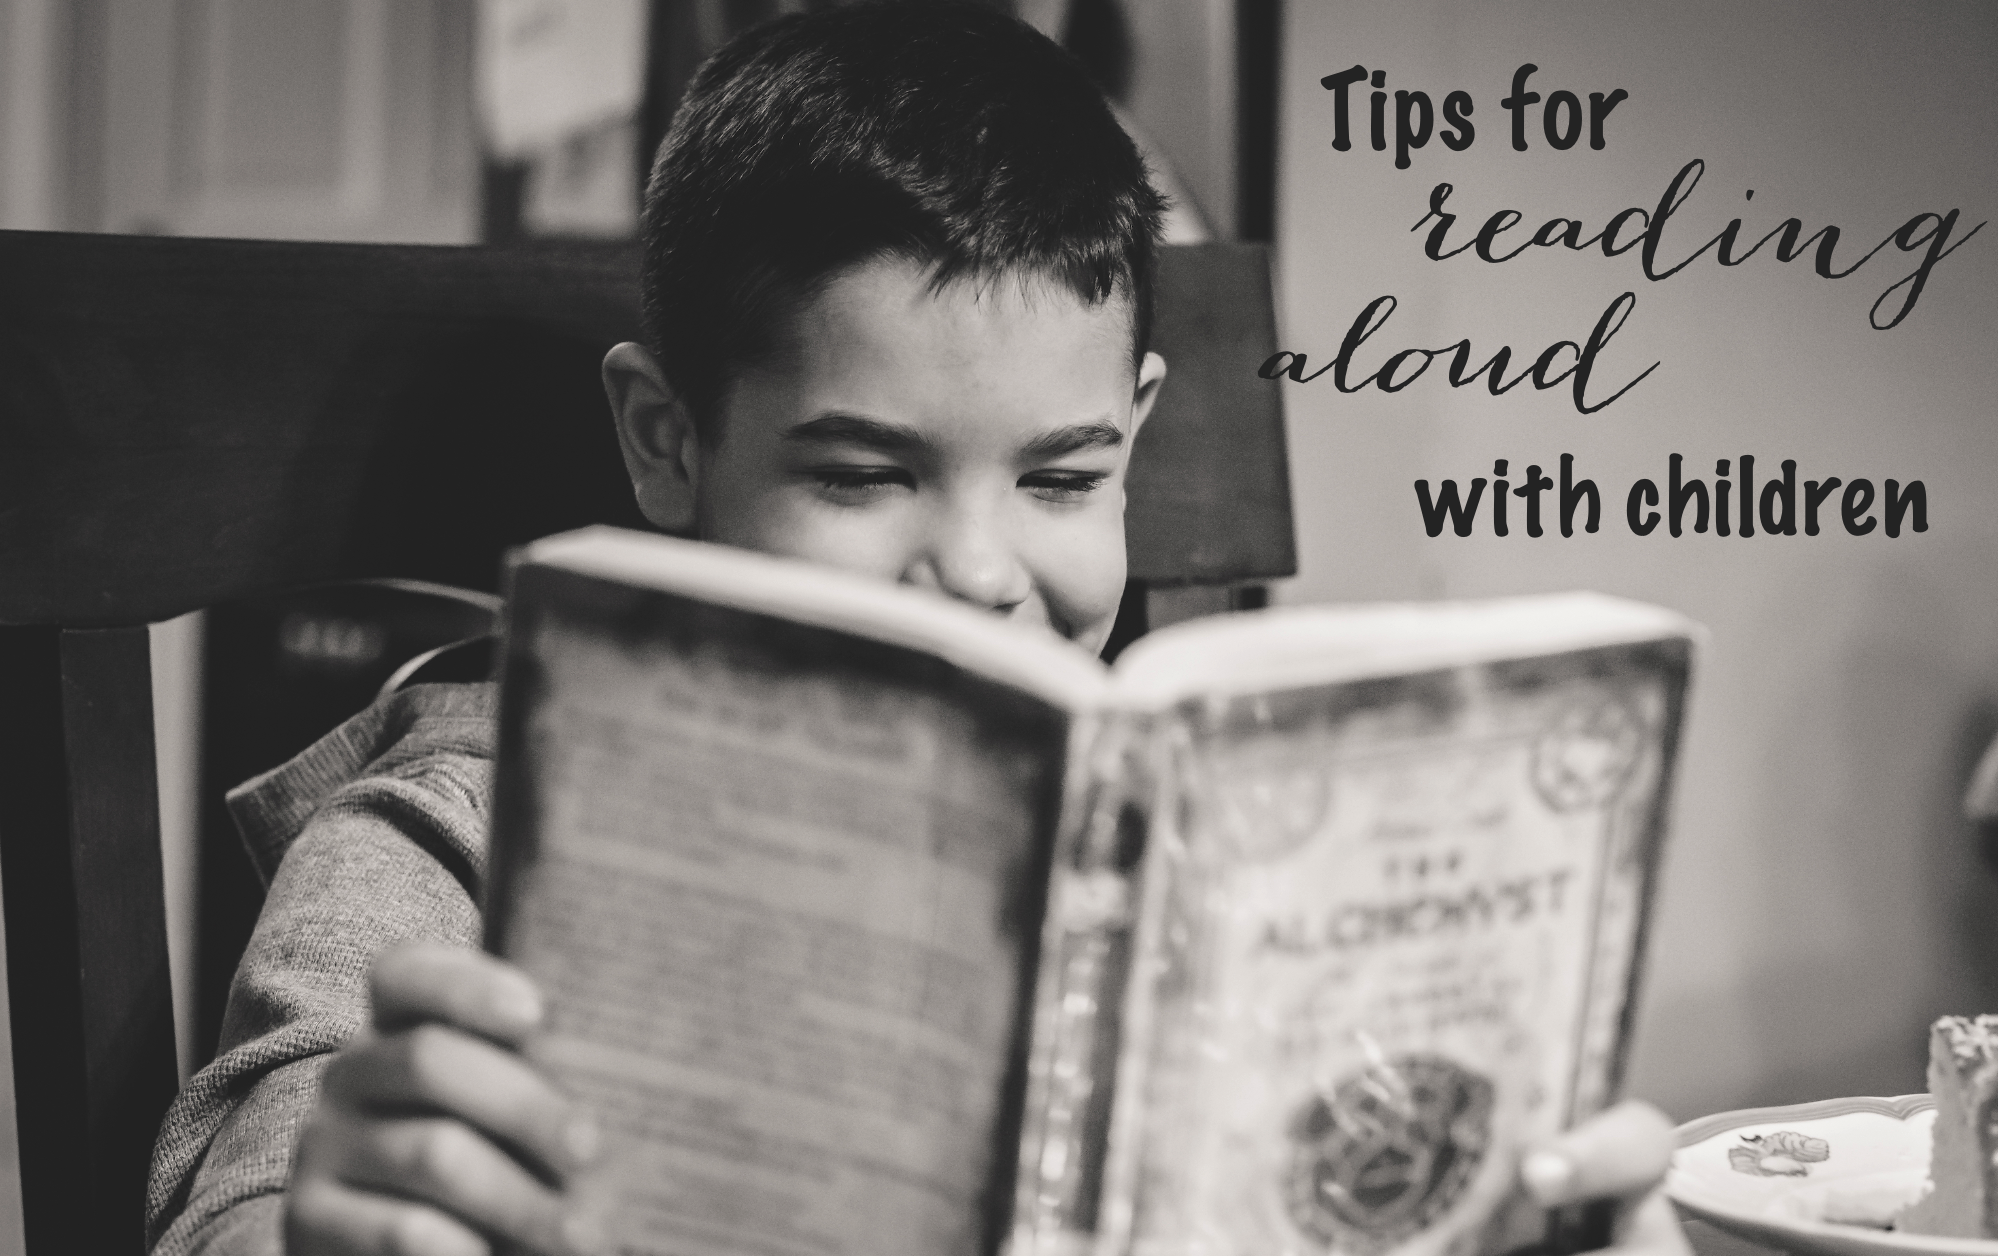 tips benefits for reading aloud with children